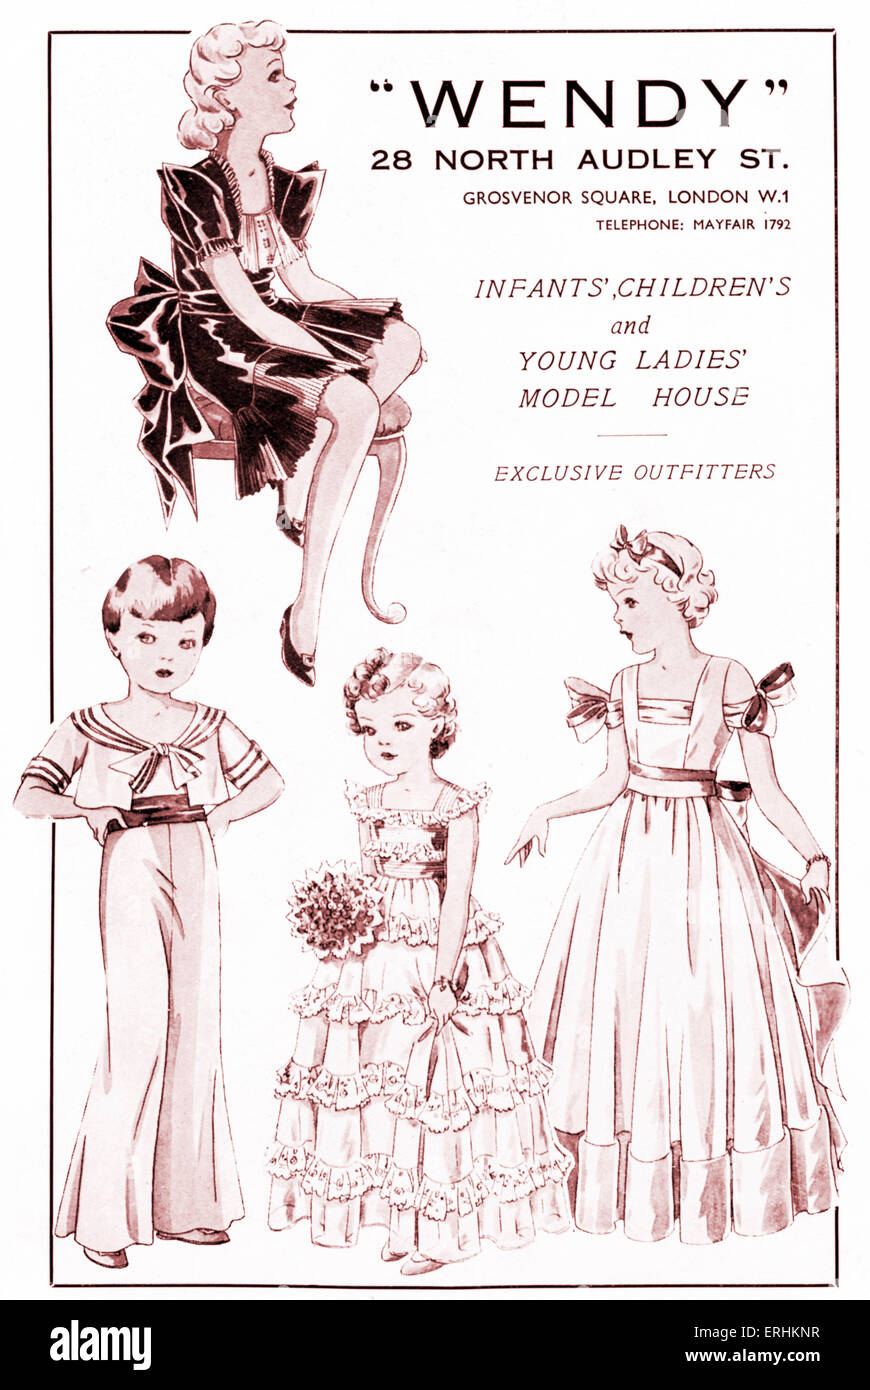 Advertisement for children 's clothing shop 'Wendy' 1937. Young girls in dresses and gowns, sailor suits. - Stock Image